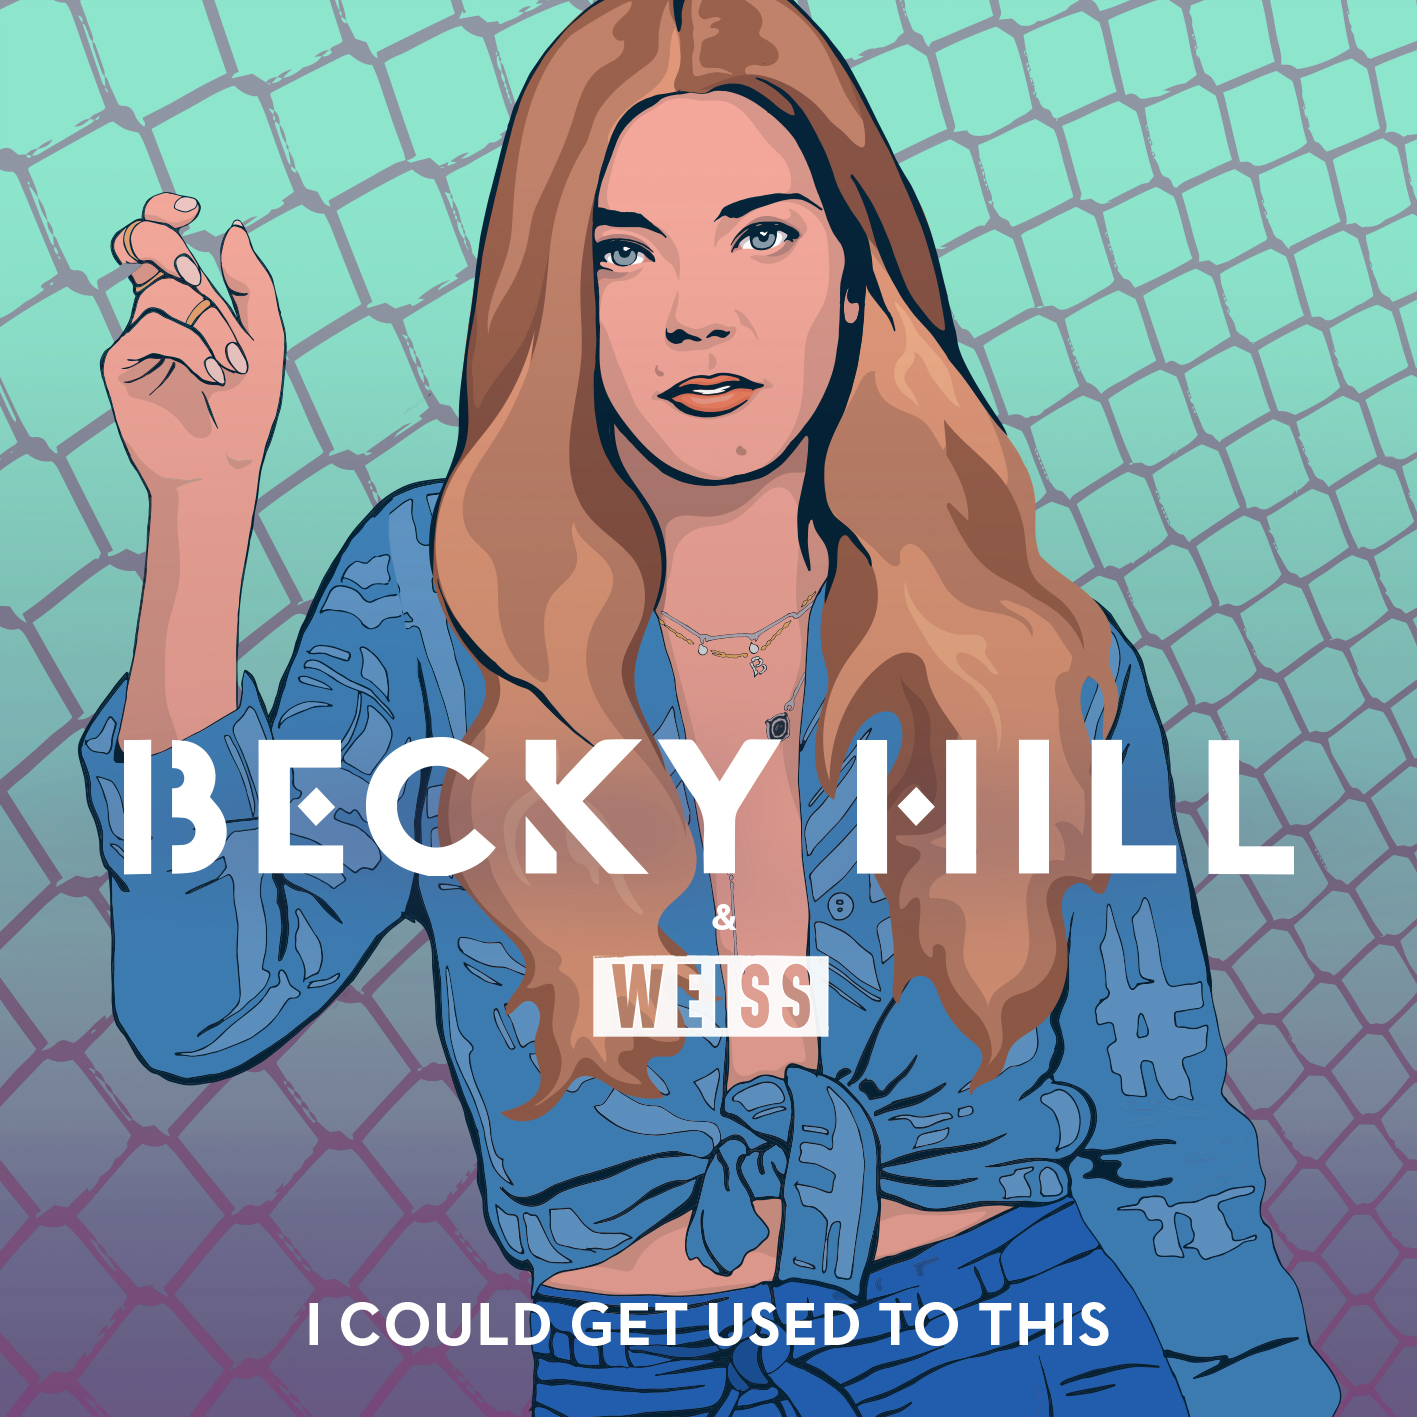 Art for I Could Get Used To This by Becky Hill & Weiss